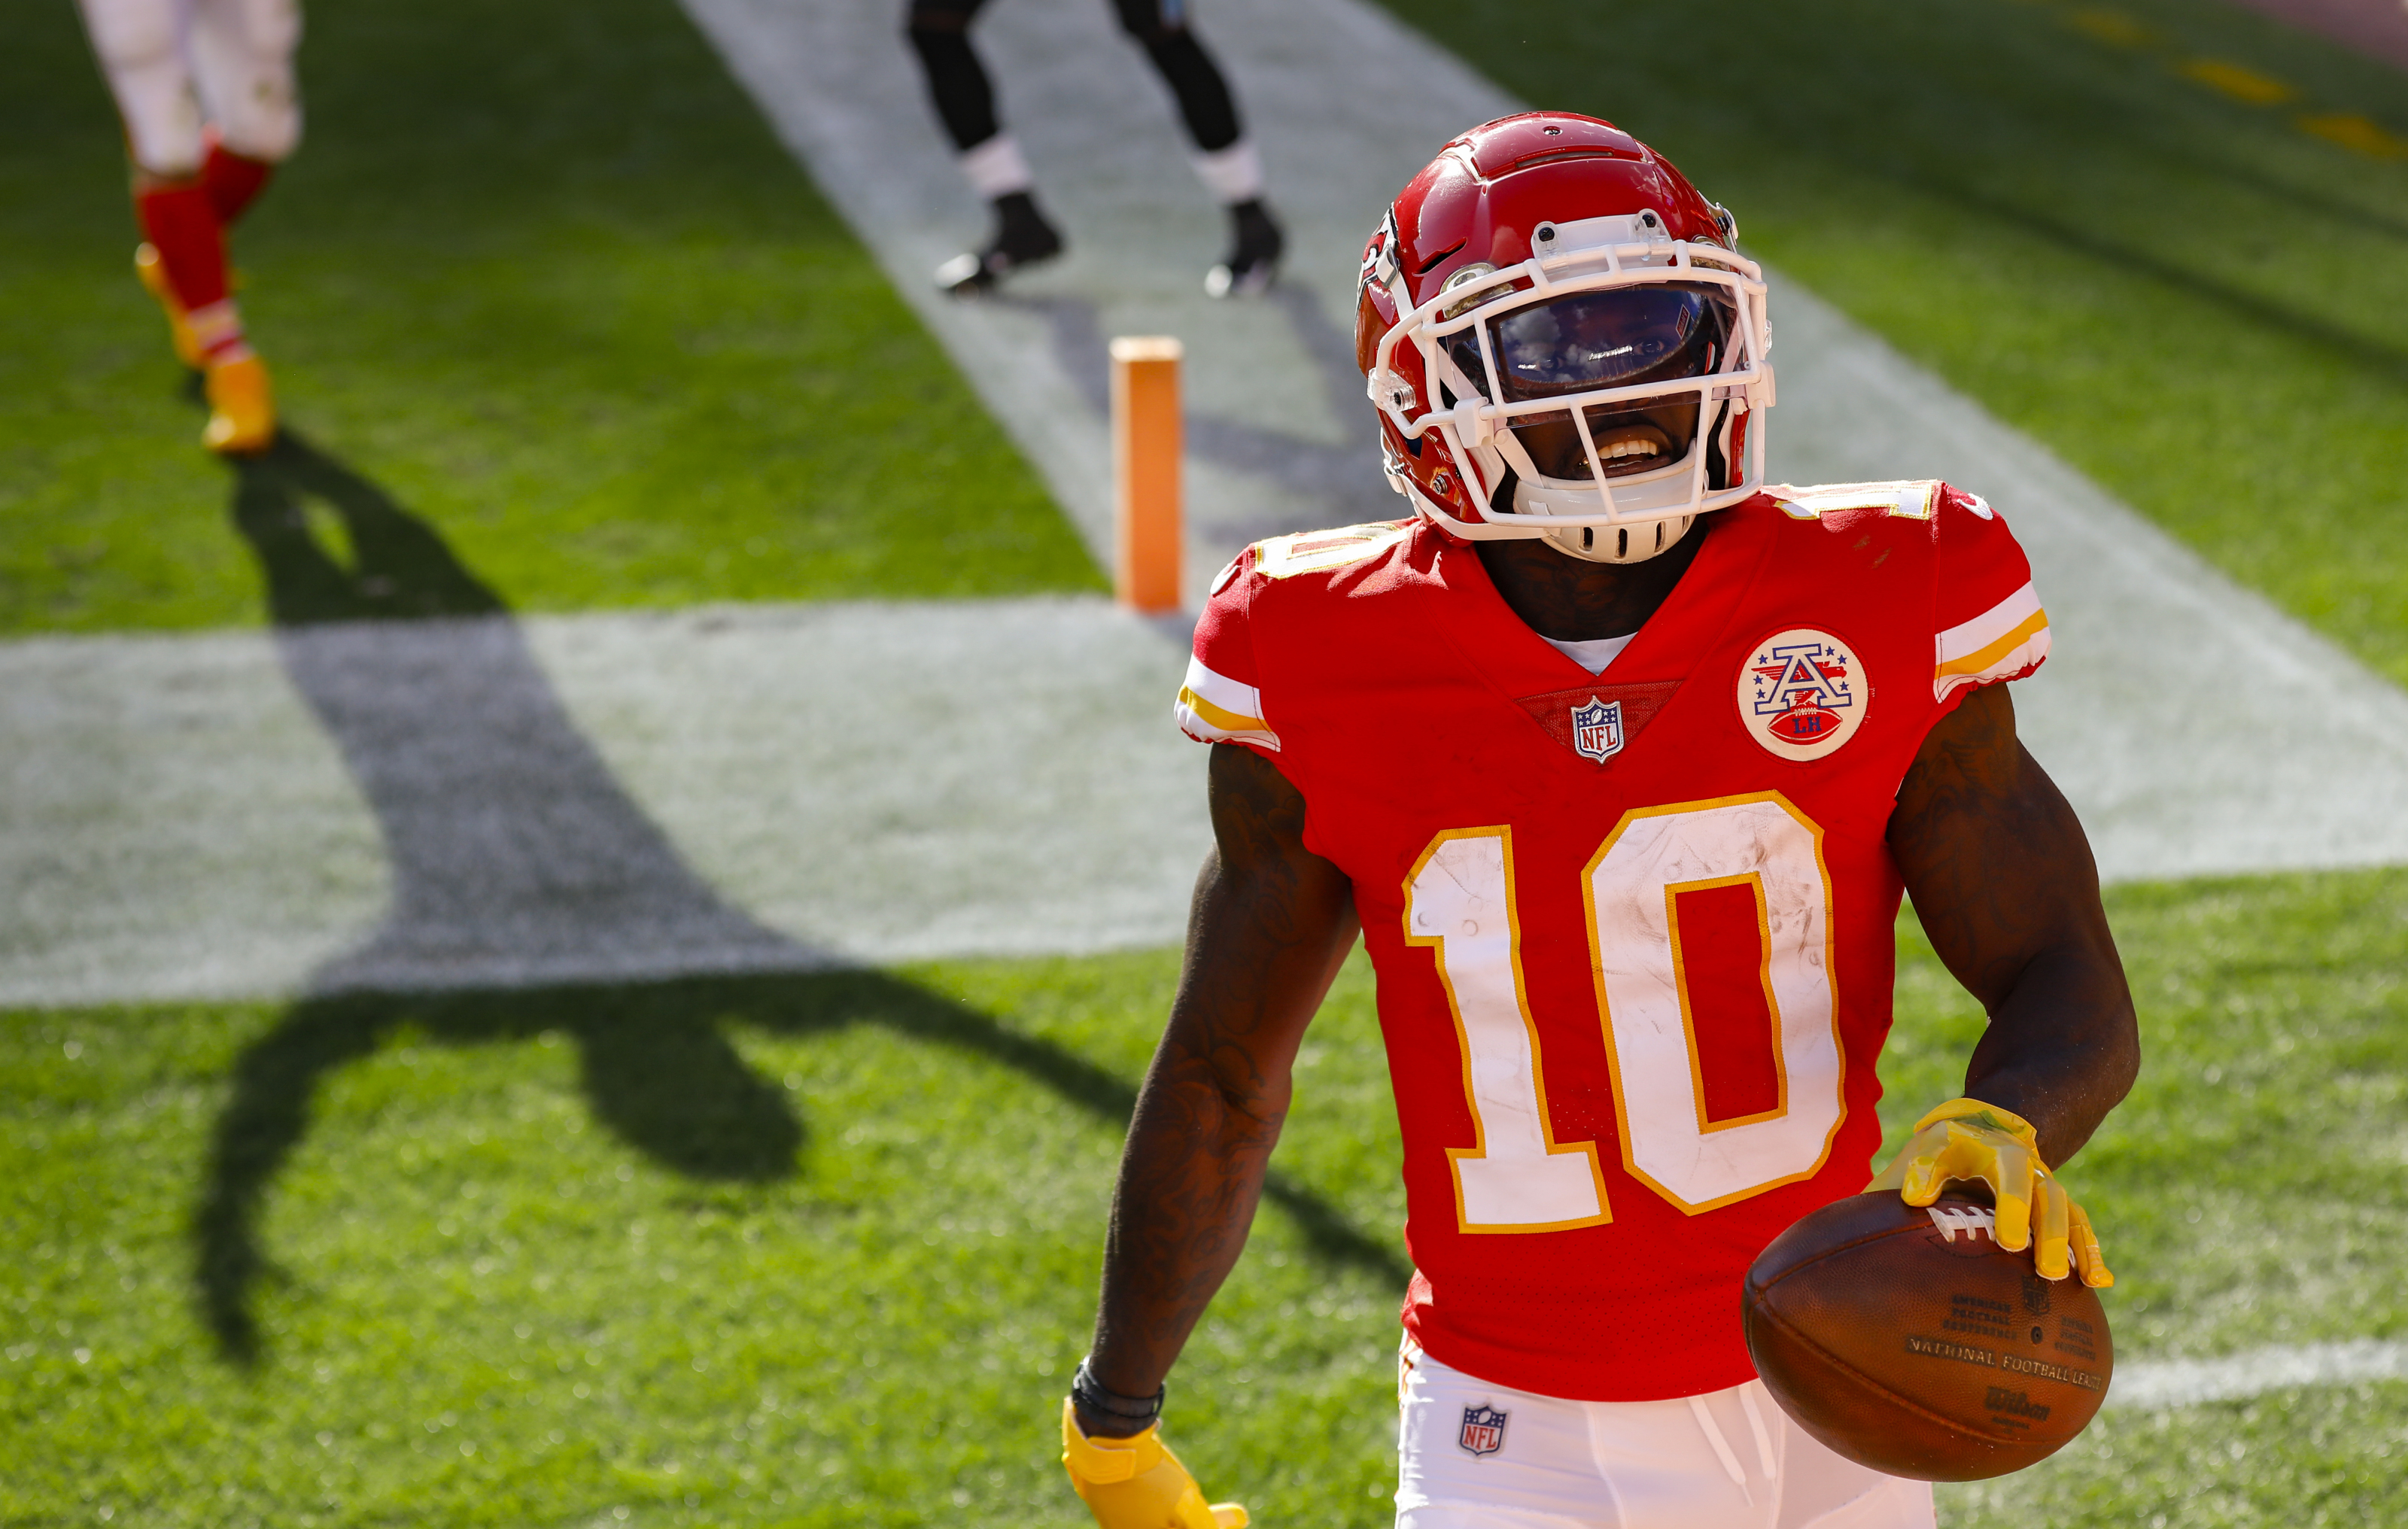 Tyreek Hill is already the greatest Chiefs wide receiver ever